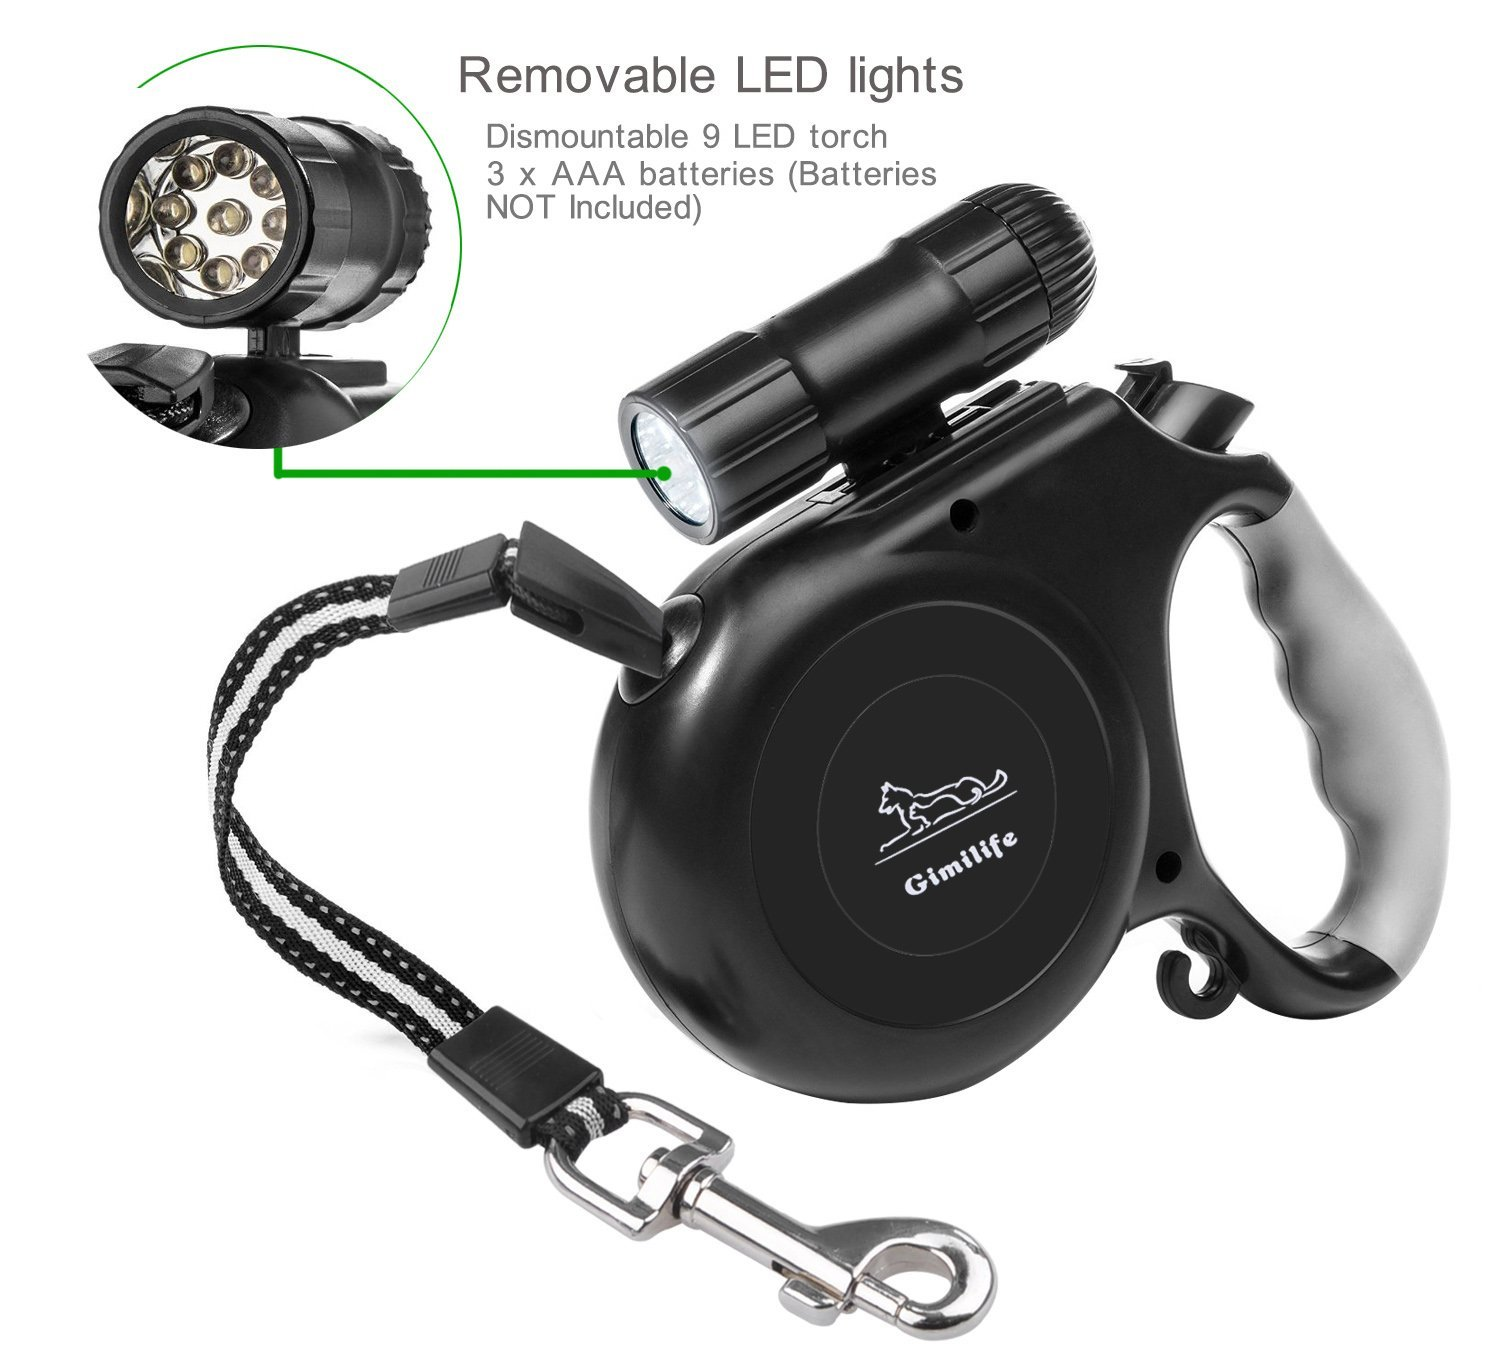 Gimilife 16ft Retractable Dog Leash with Detachable Flashlight LED Torch For Small Medium Large Pets- ABS Nylon TPE (Black)